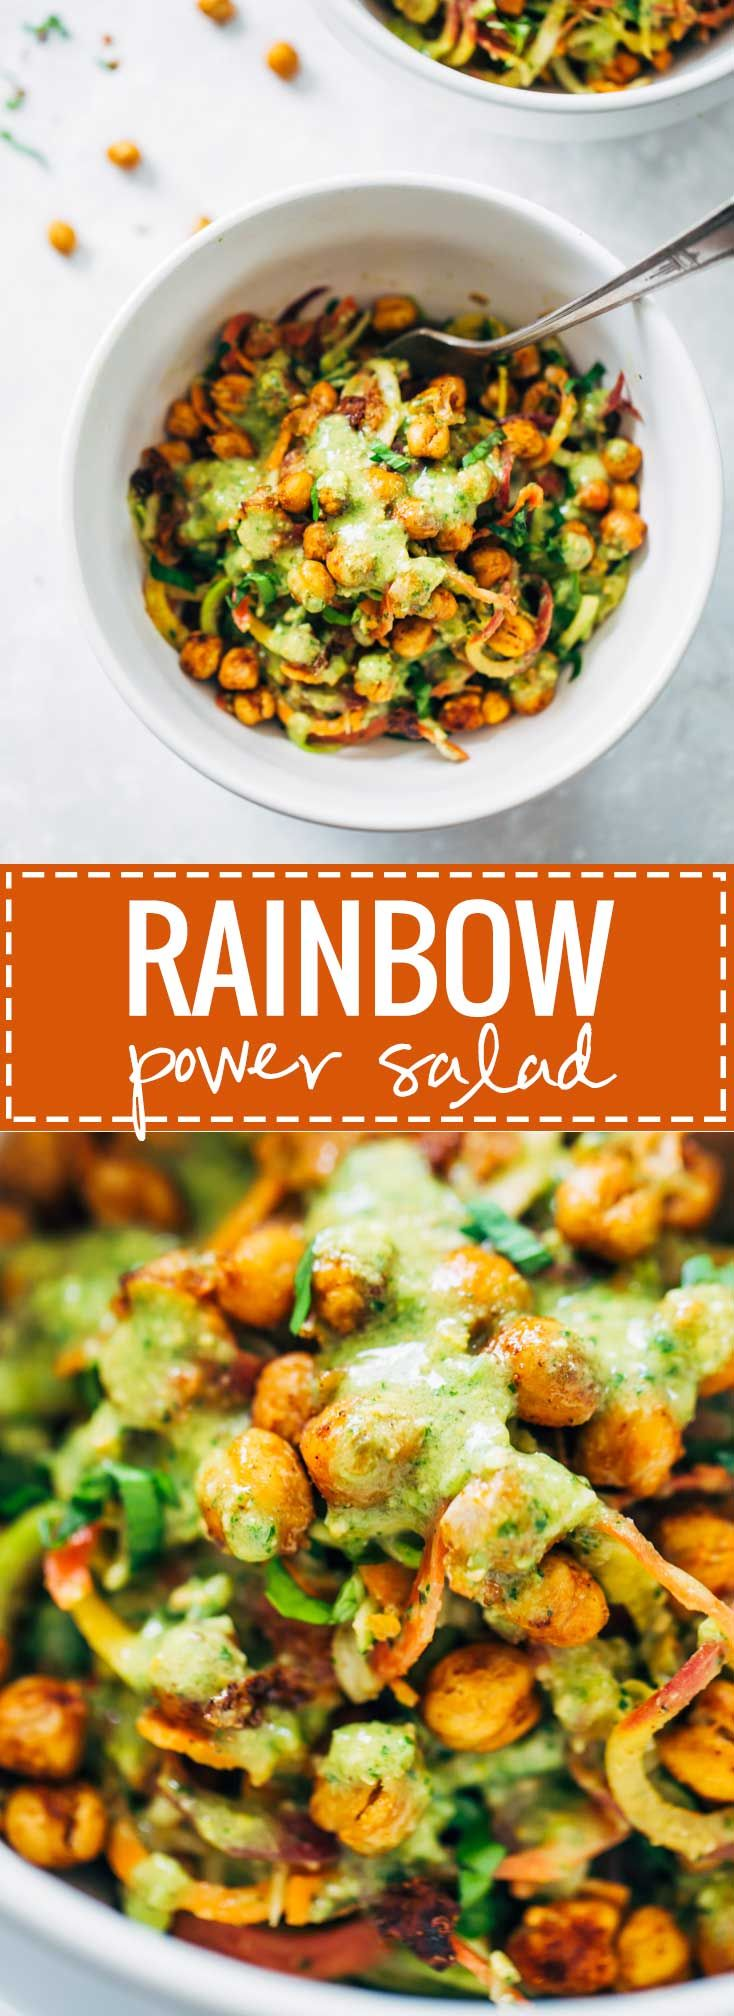 Phase 3: This bowl-o-goodness is a rainbow of veggies that gives you all the nutritious power of zucchini and carrots and fresh herbs and greens, tossed with a handful of crispy, spiced, roasted chickpeas and the ultimate flavor bomb of 2015 aka Magic Green Sauce.